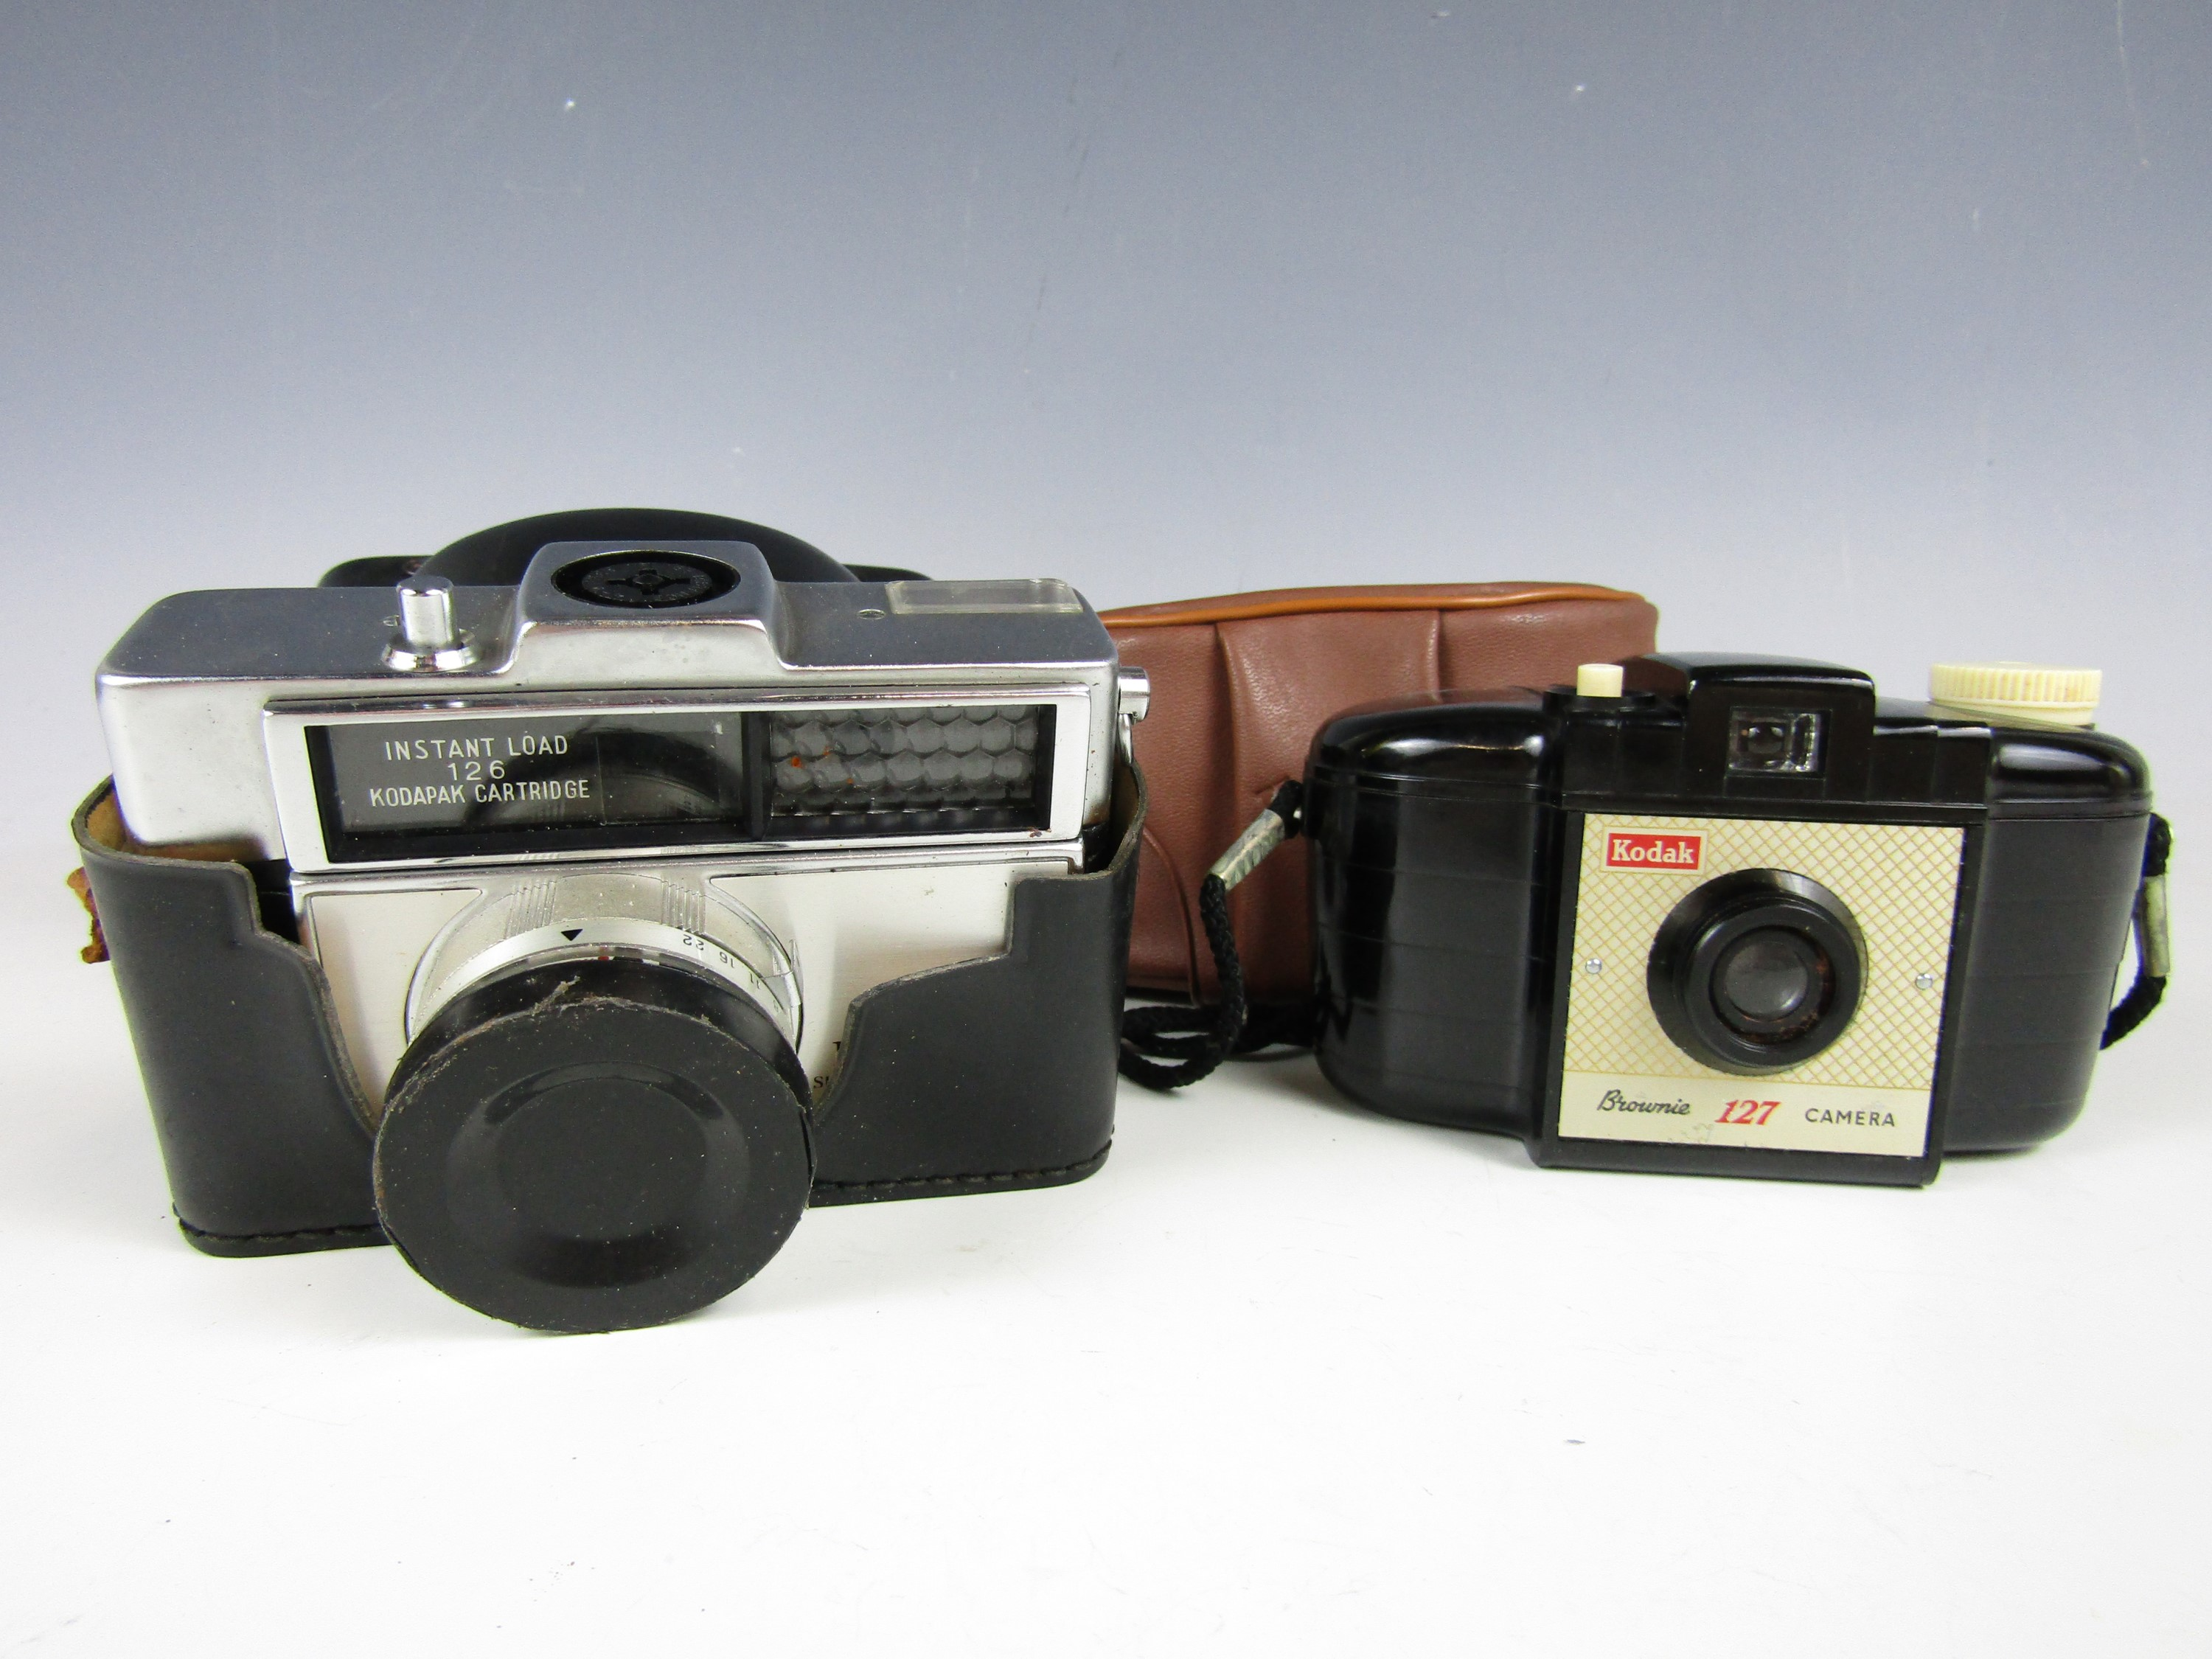 Lot 14 - A vintage Kodak Brownie 127 compact film camera together with one other similar